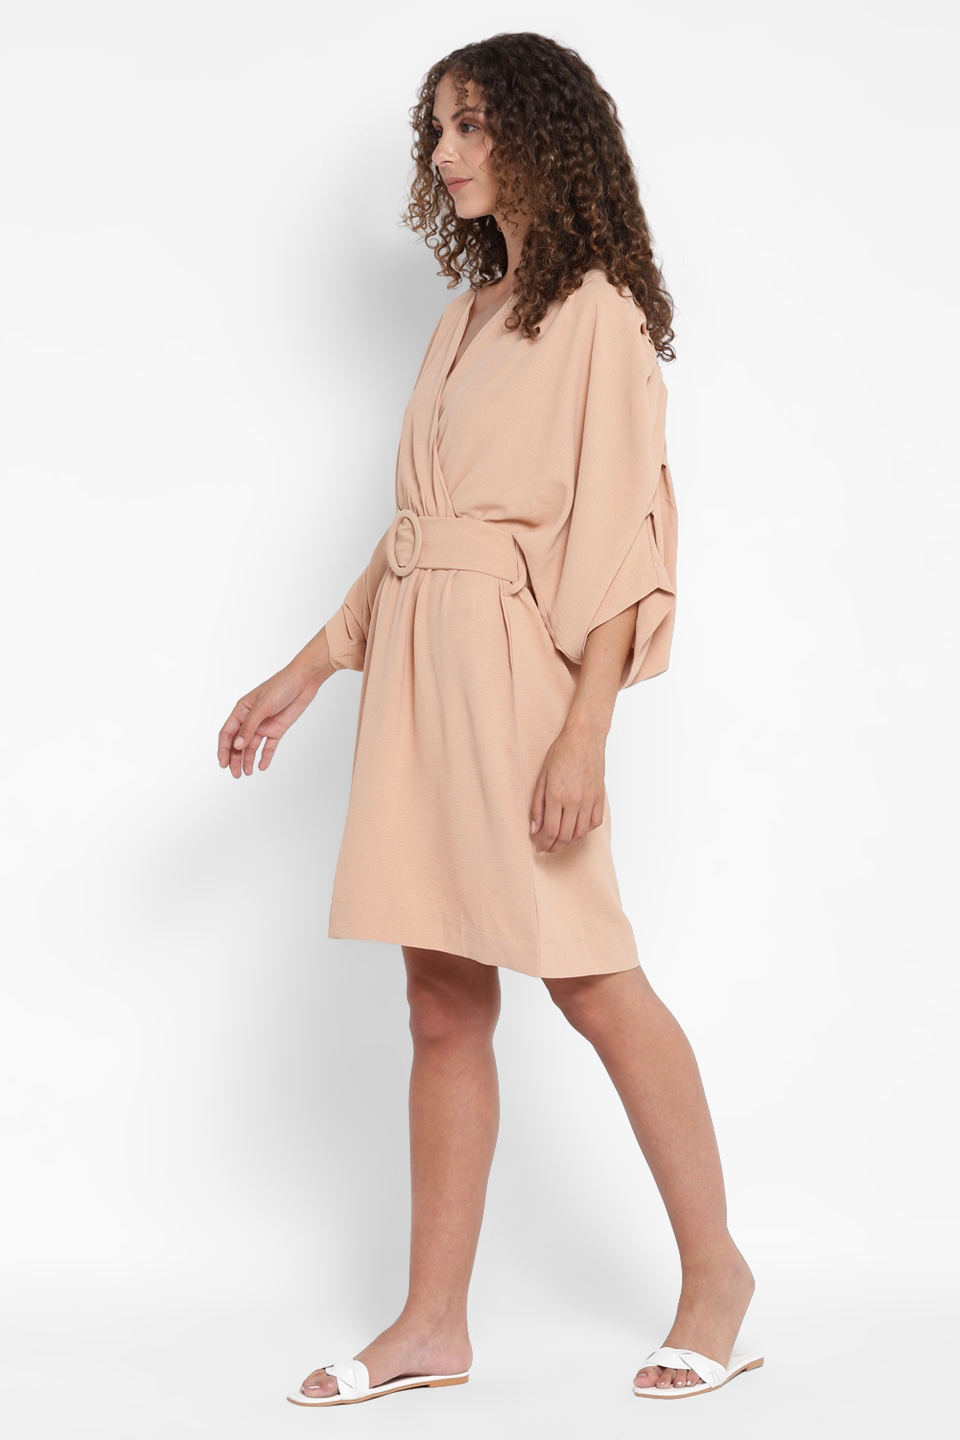 AQUILA SUNKISS KNEE LENGTH V-NECK STRAIGHT BRUNCH DRESS WITH  3/4TH SLEEVES AND BELT